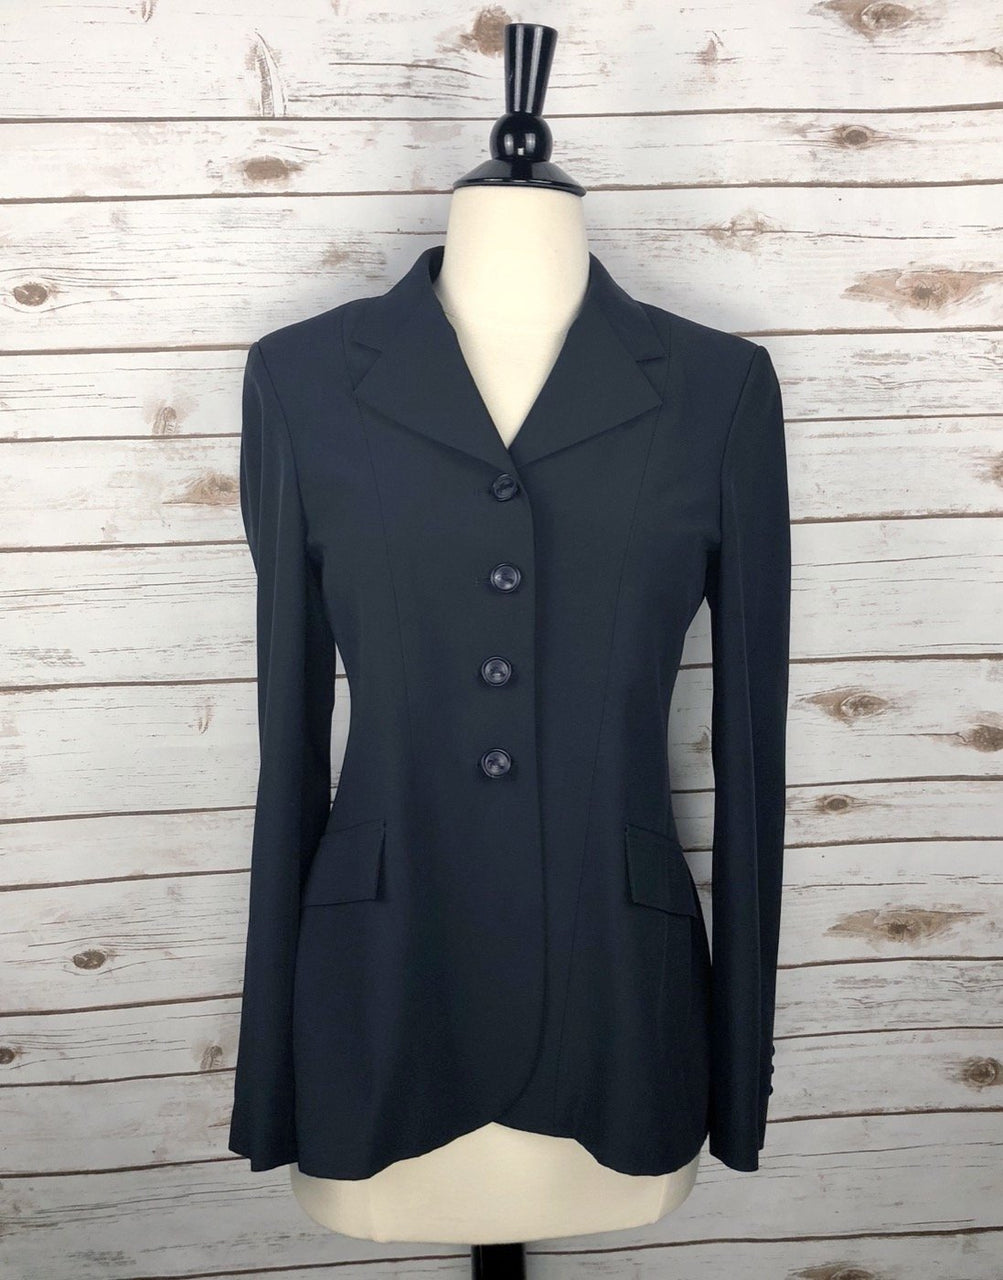 Grand Prix TechLite Hunt Coat in Navy - Women's 10R (US 4R)